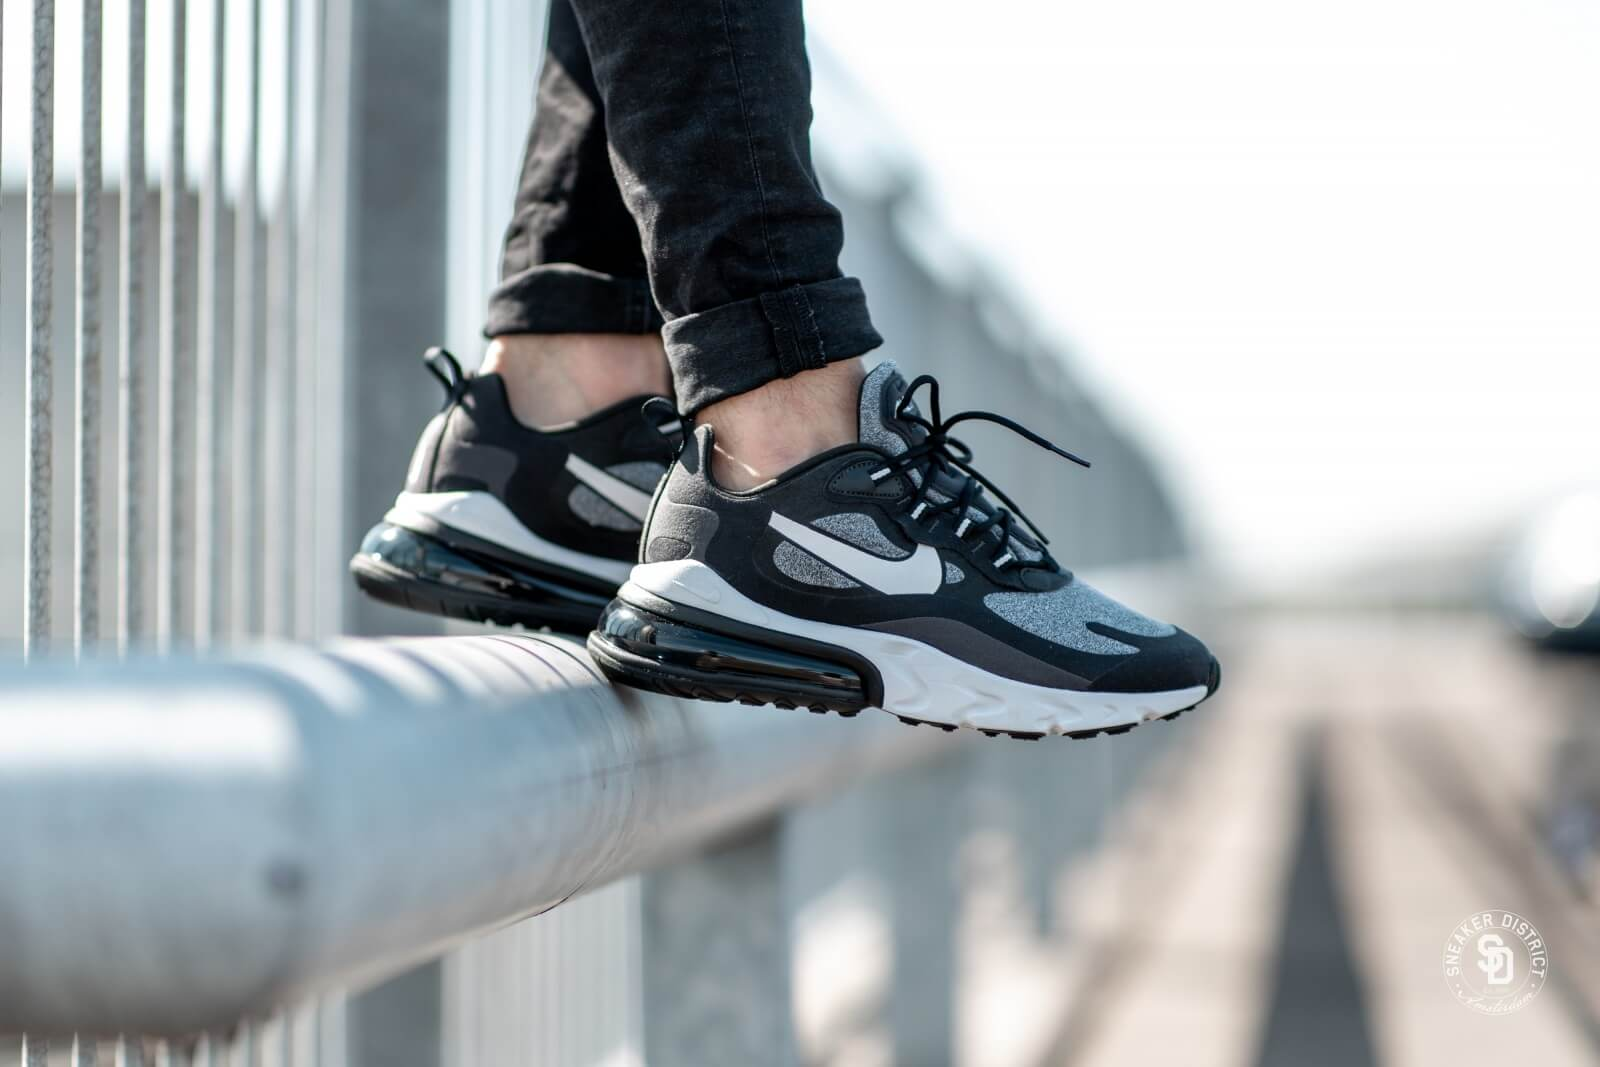 Nike Air Max 270 React BlackVast Grey Off Noir AO4971 001